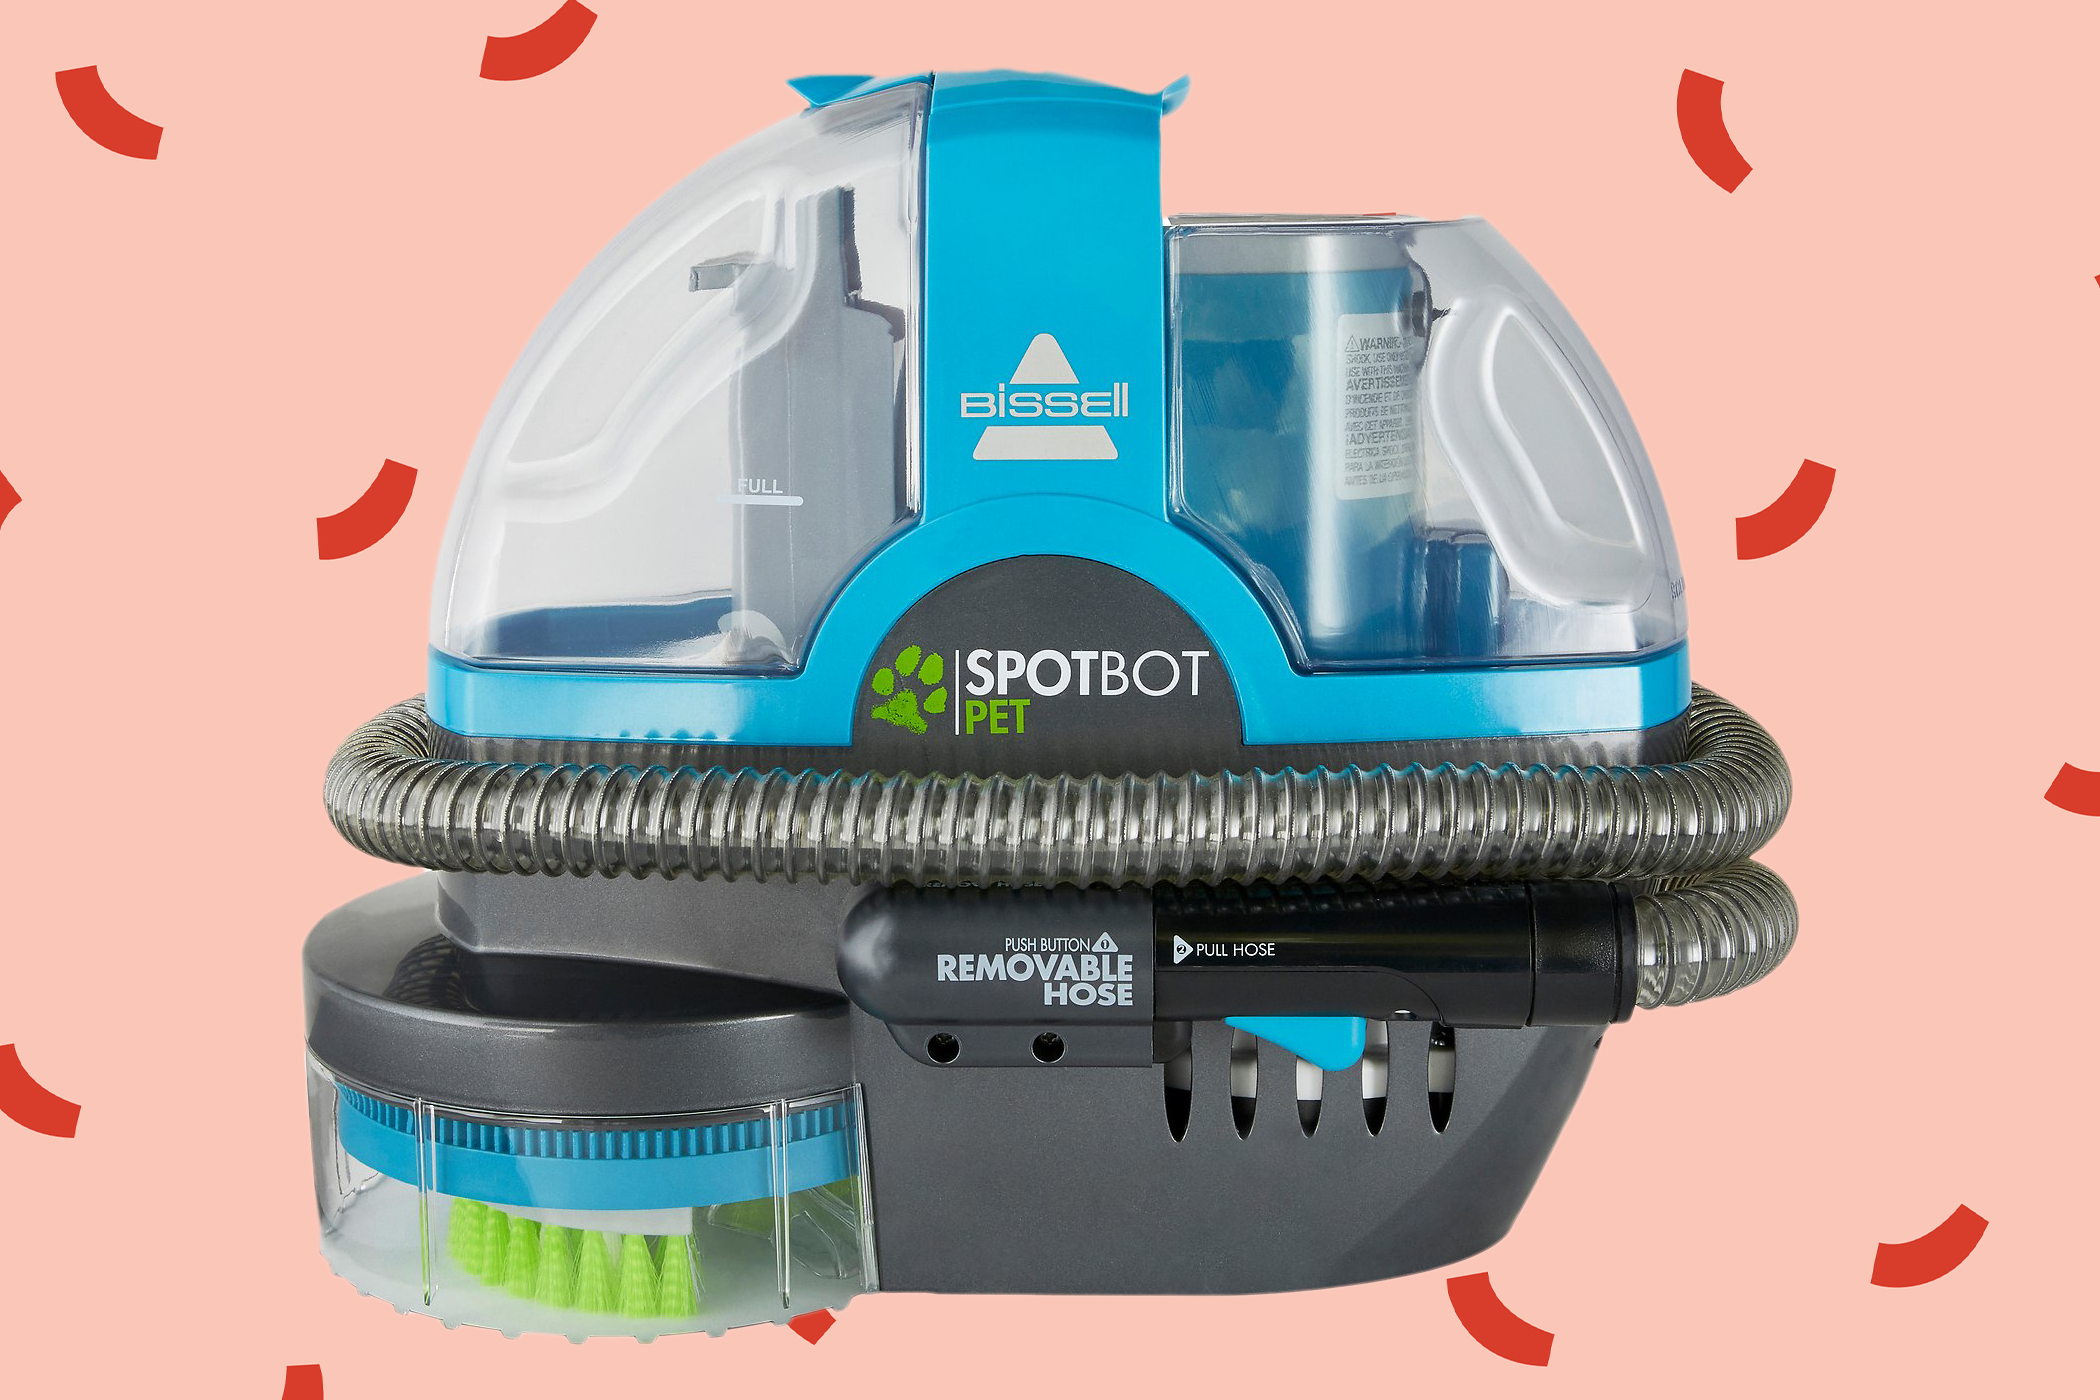 Spotbot Carpet Cleaner